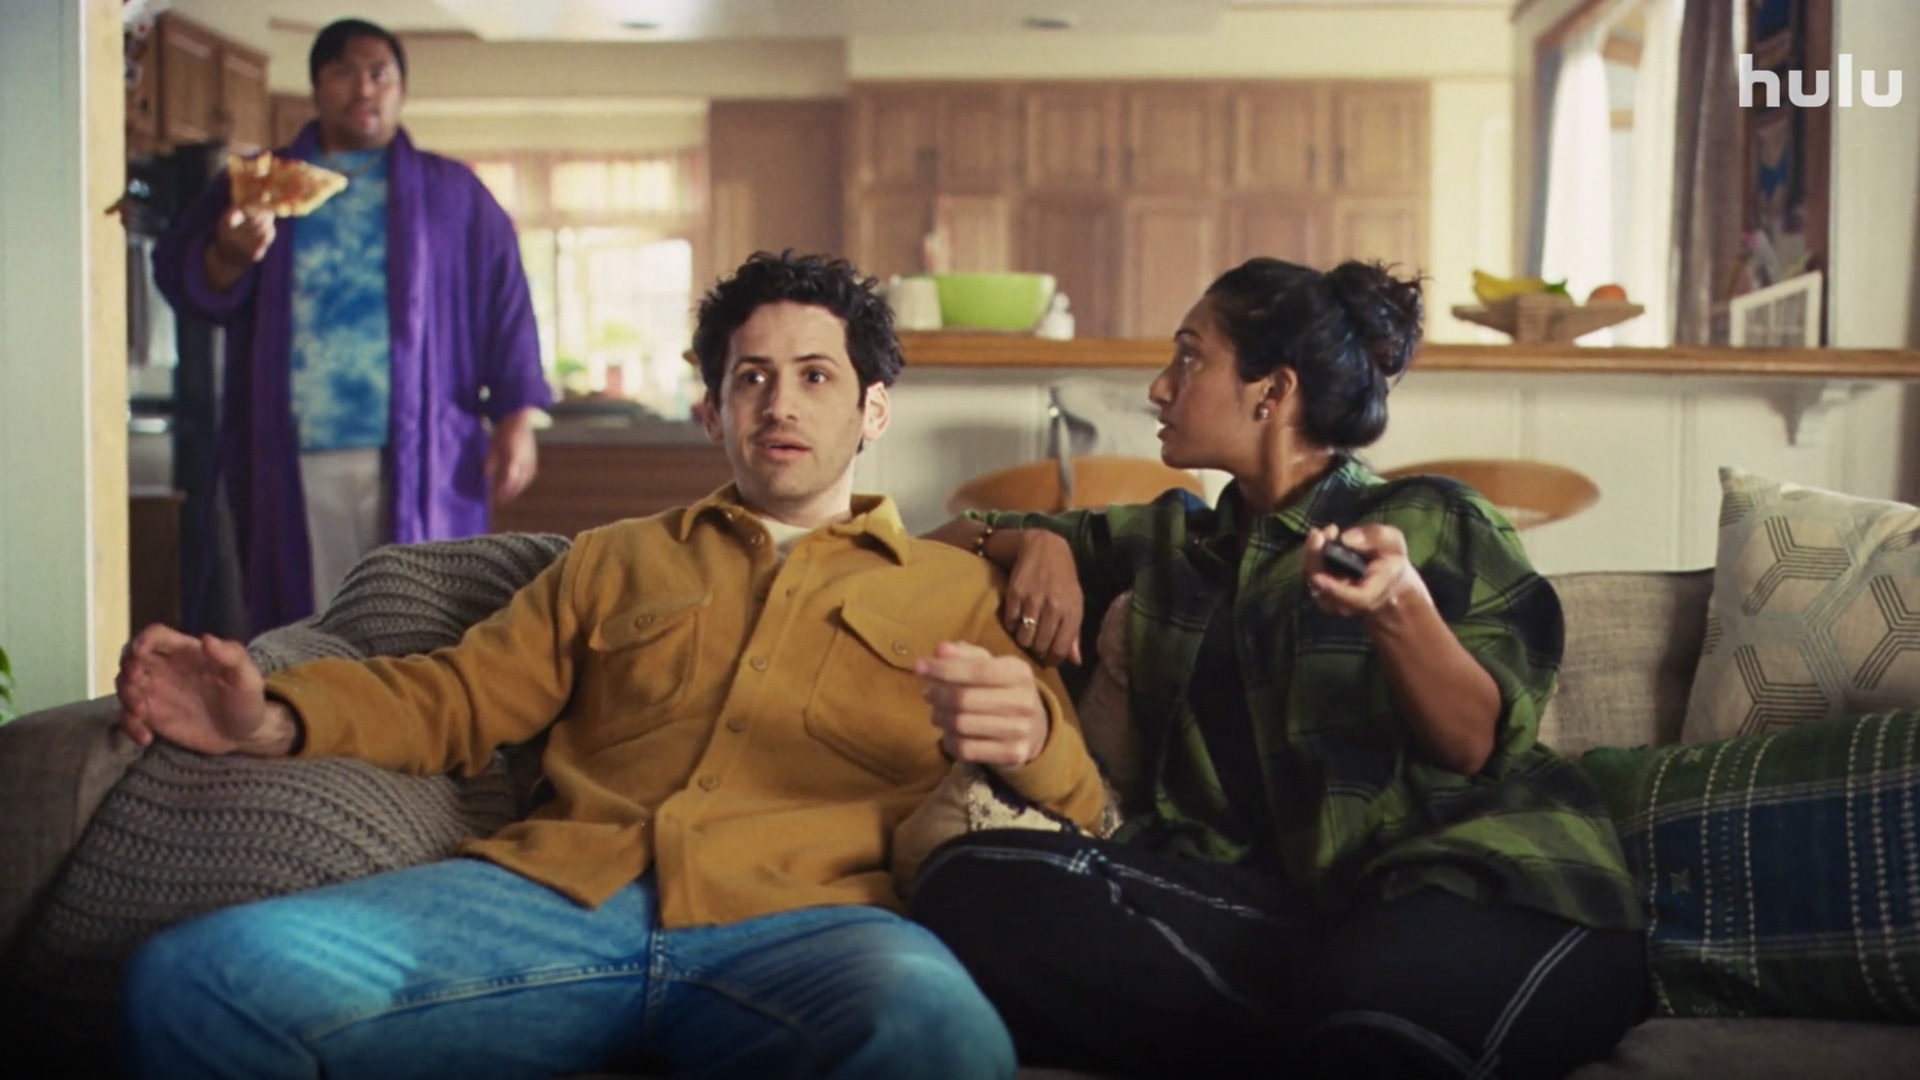 two people on a couch eating and sitting talking to someone behind them eating a pizza